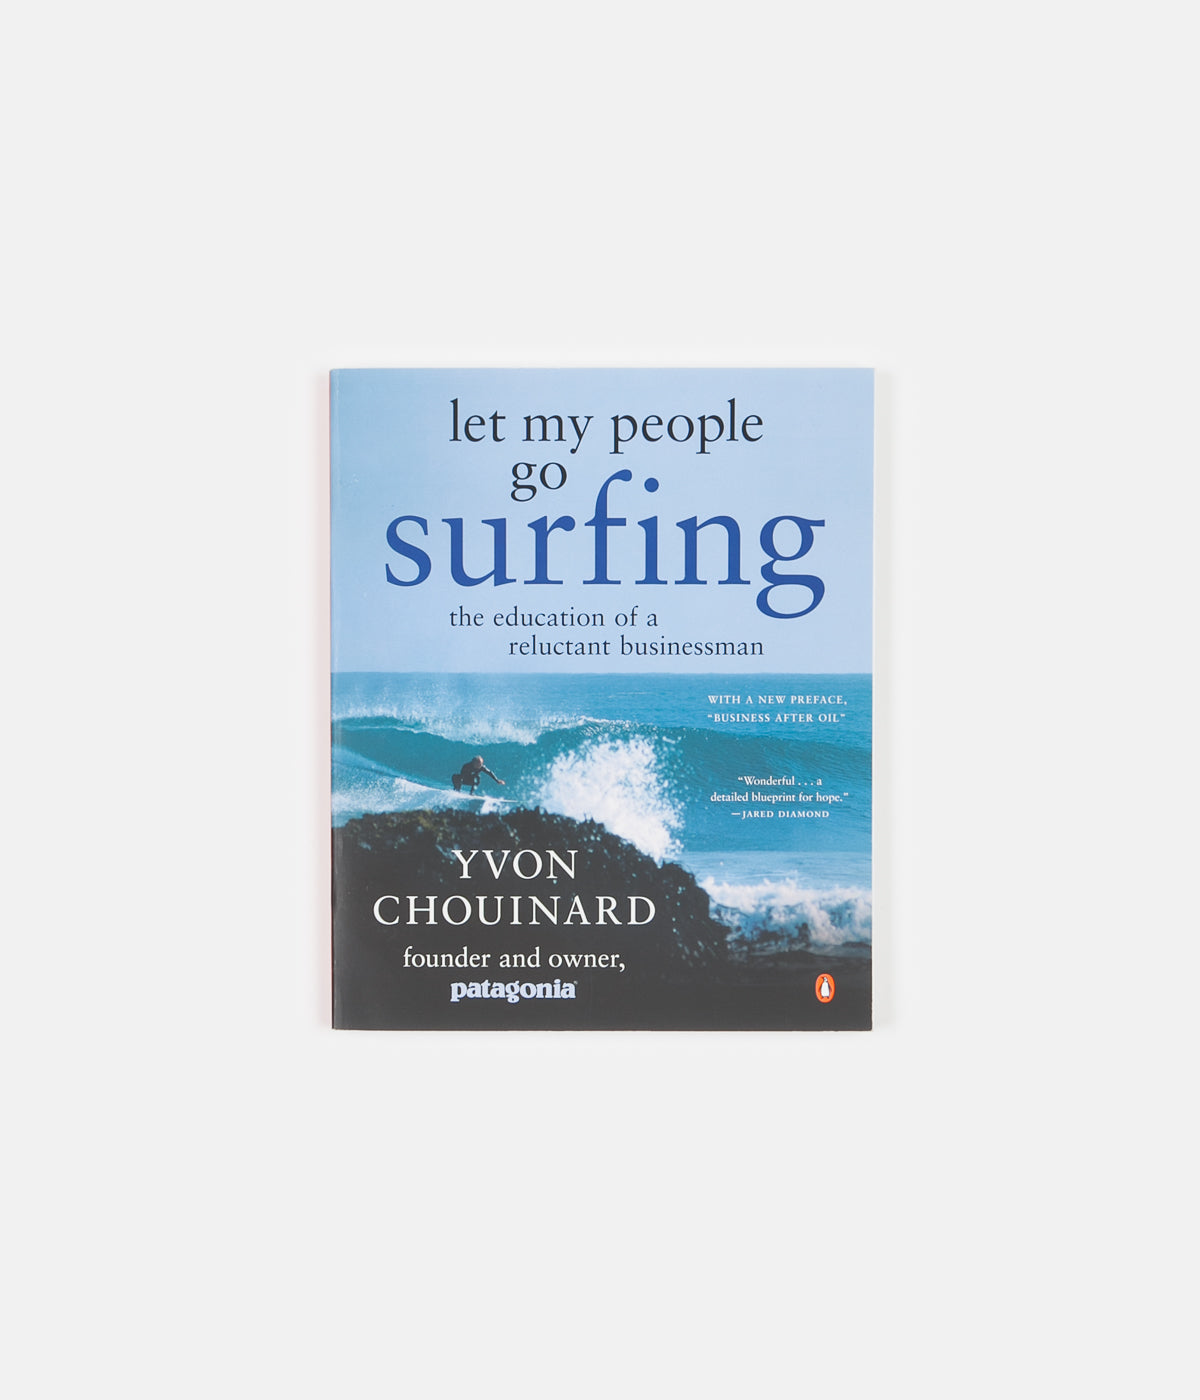 Patagonia Books Let My People Go Surfing - Yvon Chouinard